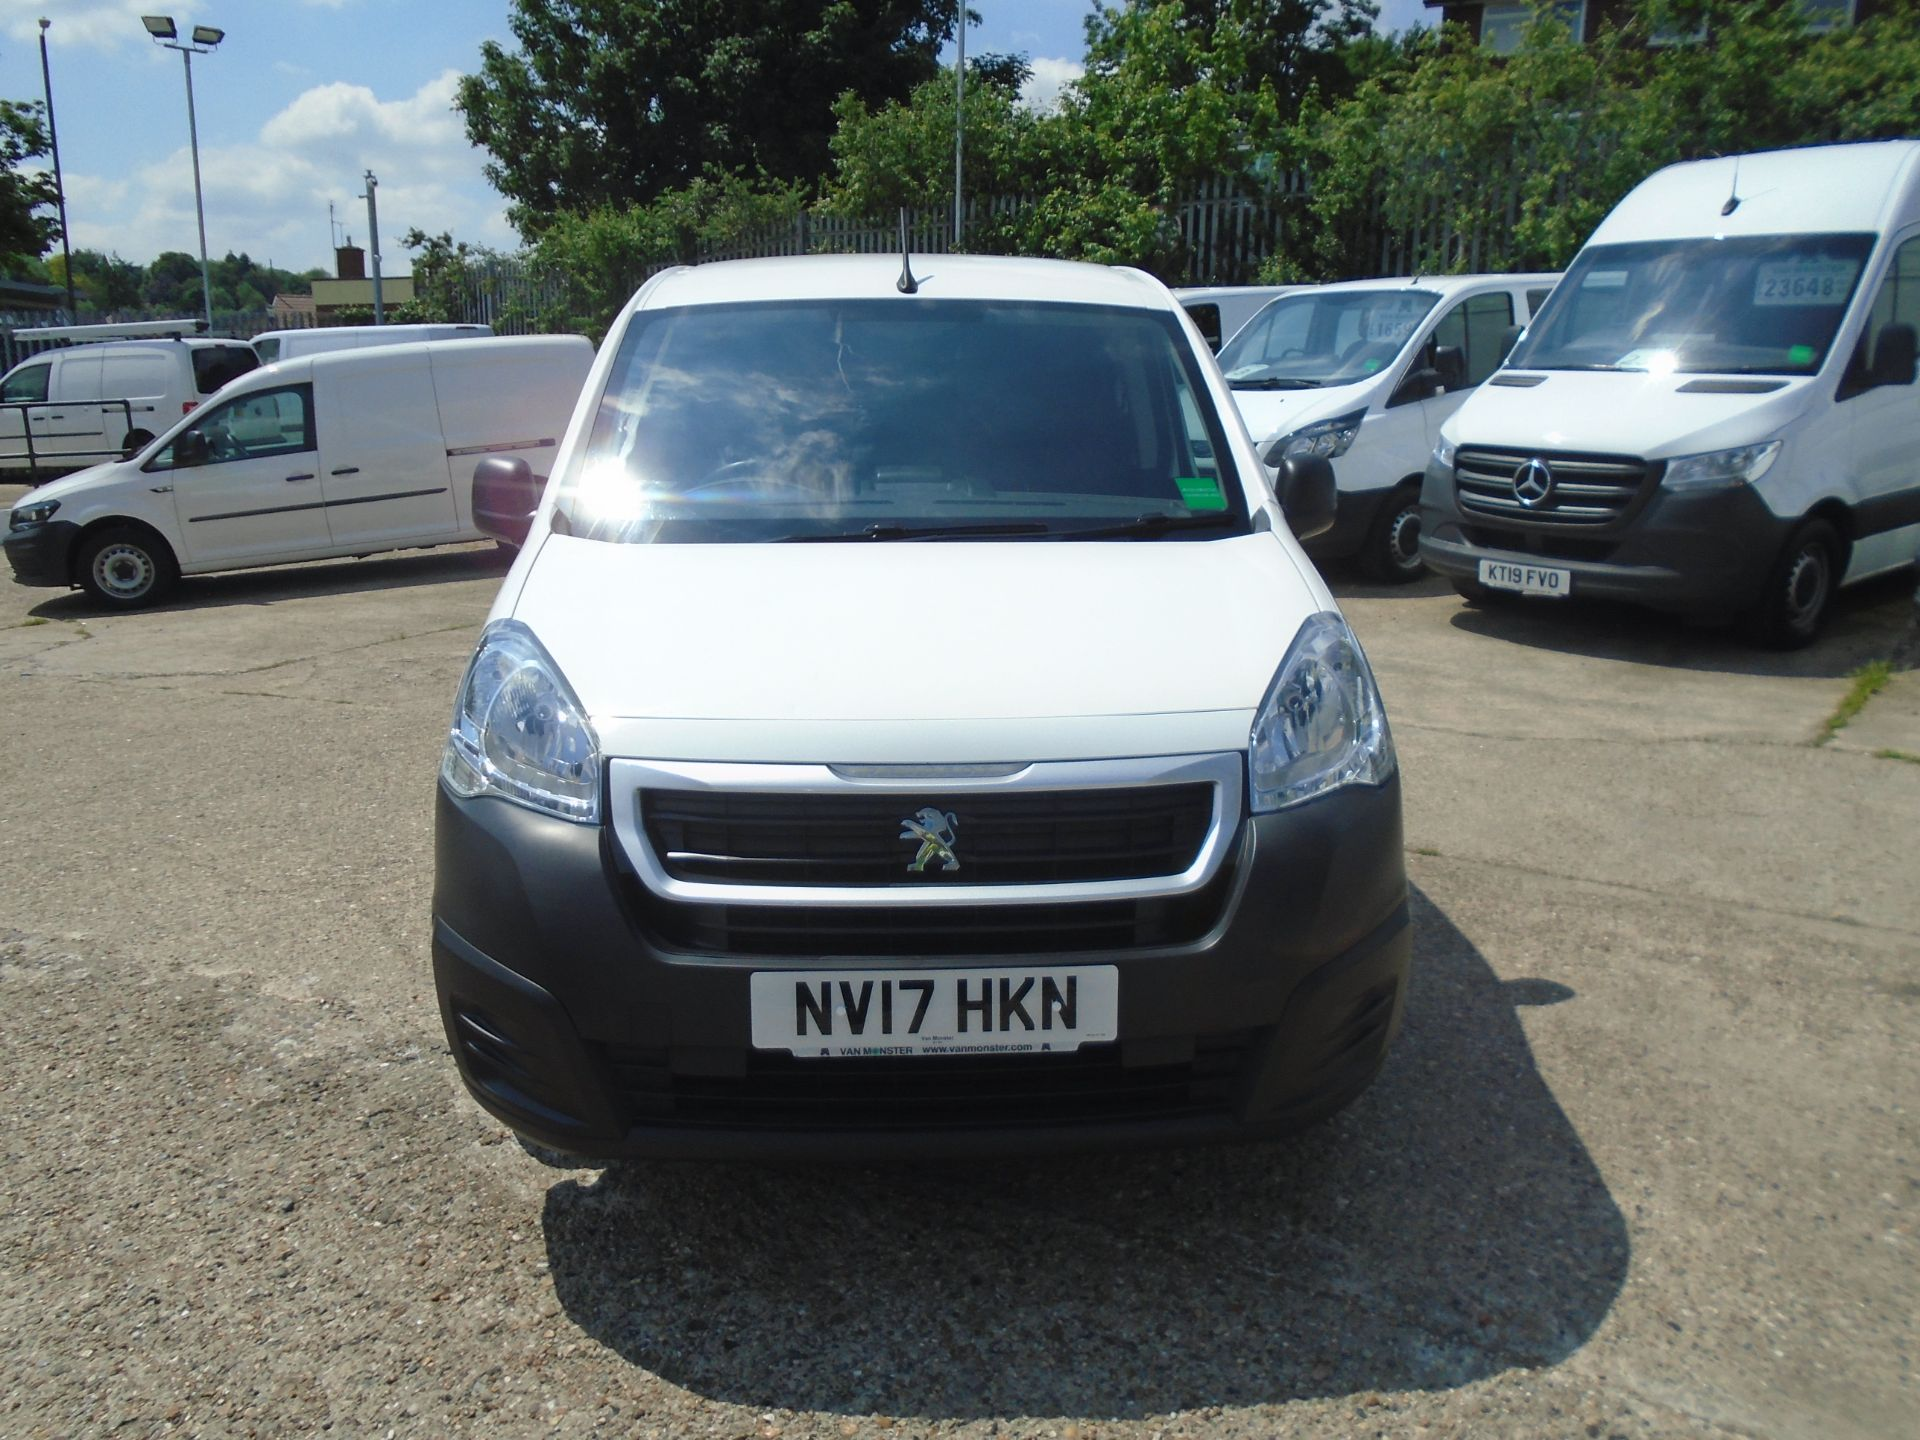 2017 Peugeot Partner 850 1.6 Bluehdi 100 Professional Van [Non Ss] *SPEED LIMITED 70MPH* (NV17HKN) Image 2